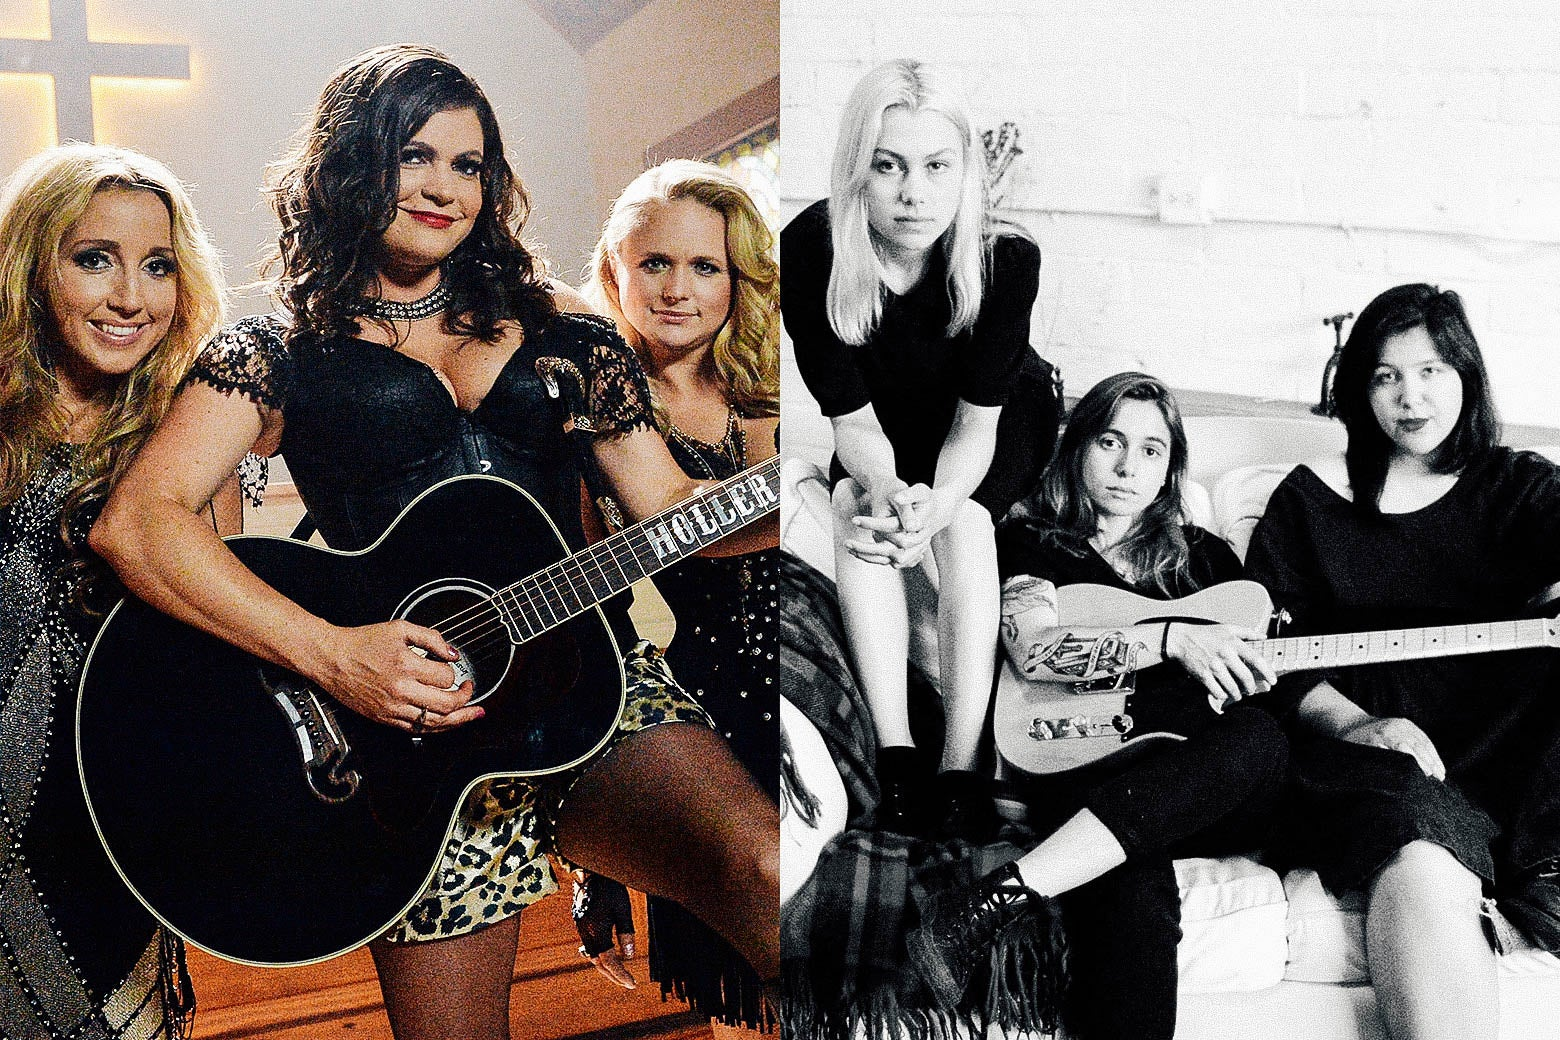 Ashley Monroe, Anagleena Presley and Miranda Lambert (Pistol Annies) and Phoebe Bridgers, Julien Baker, Lucy Dacus (boygenius)